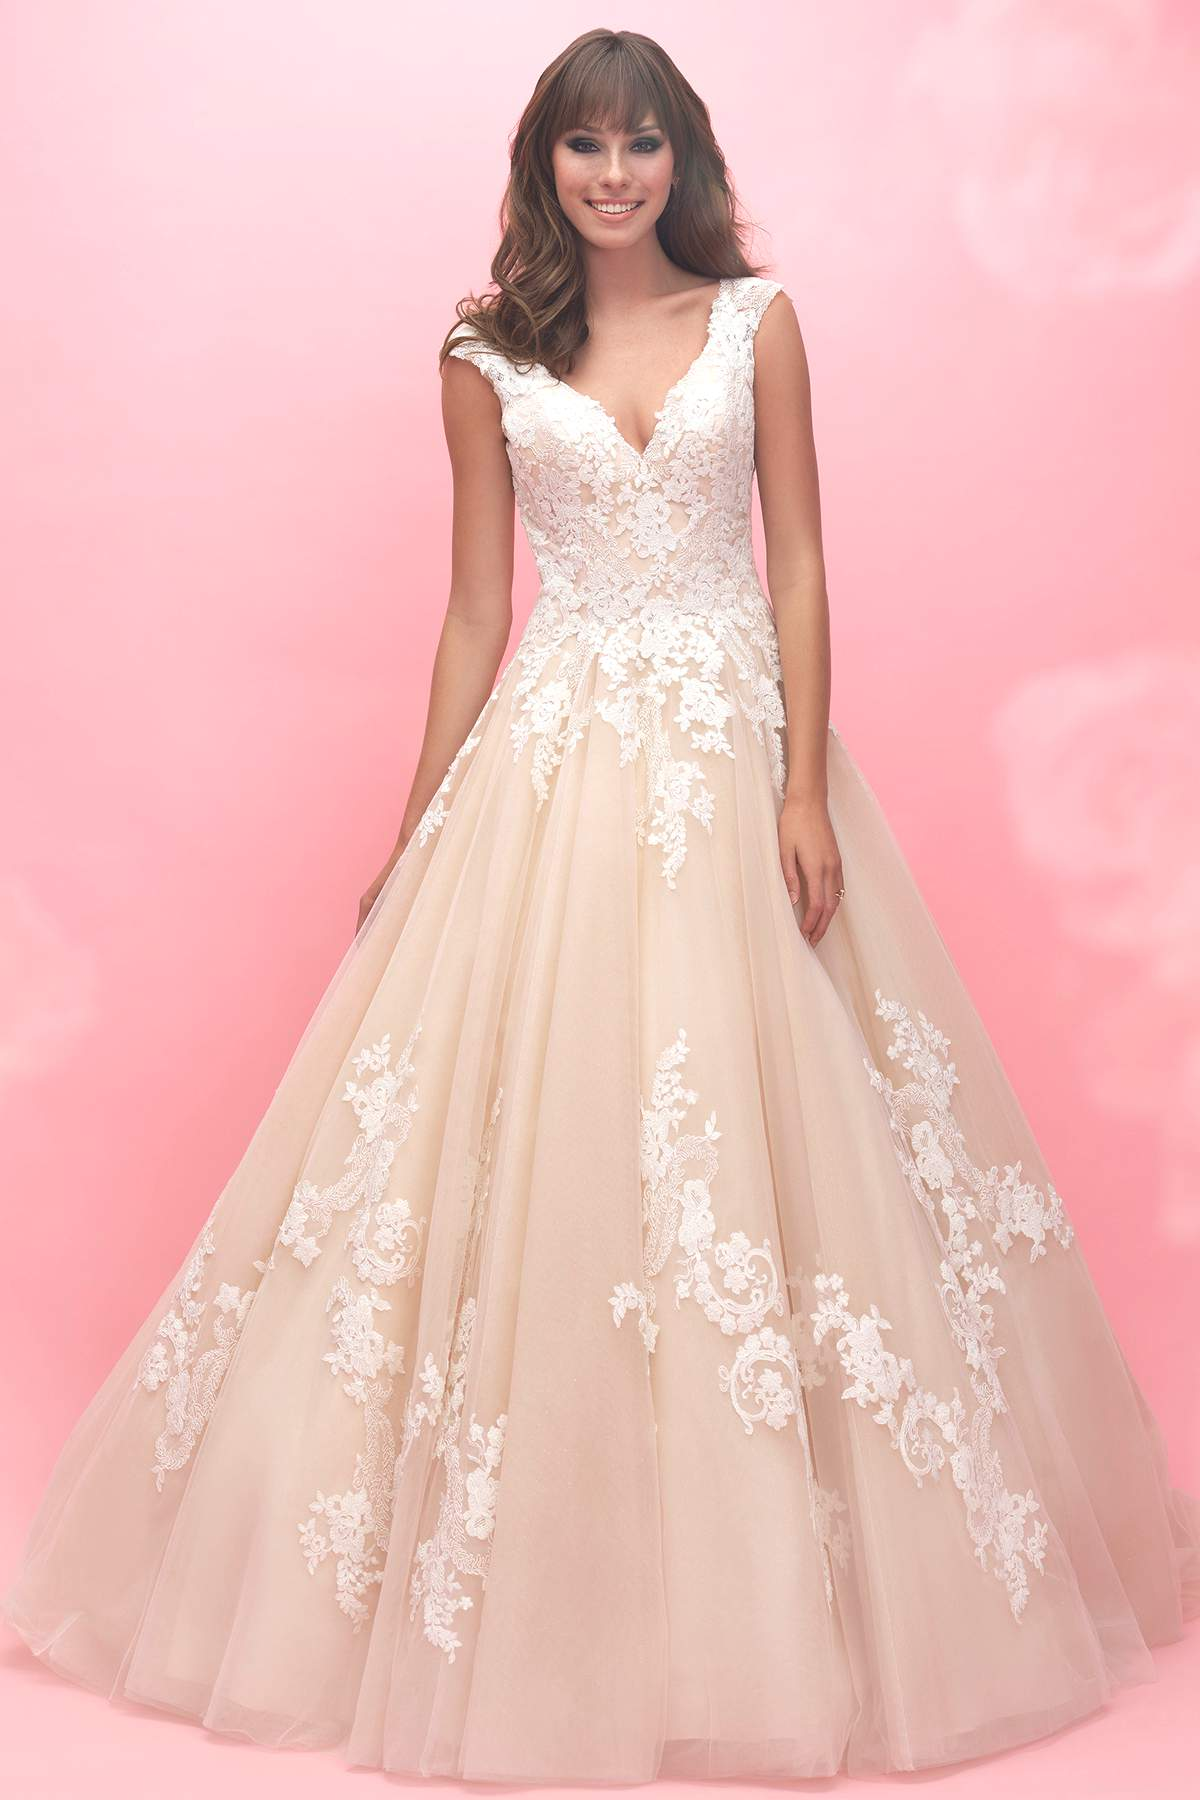 Style 3061 by Allure Romance - Find Your Dream Dress